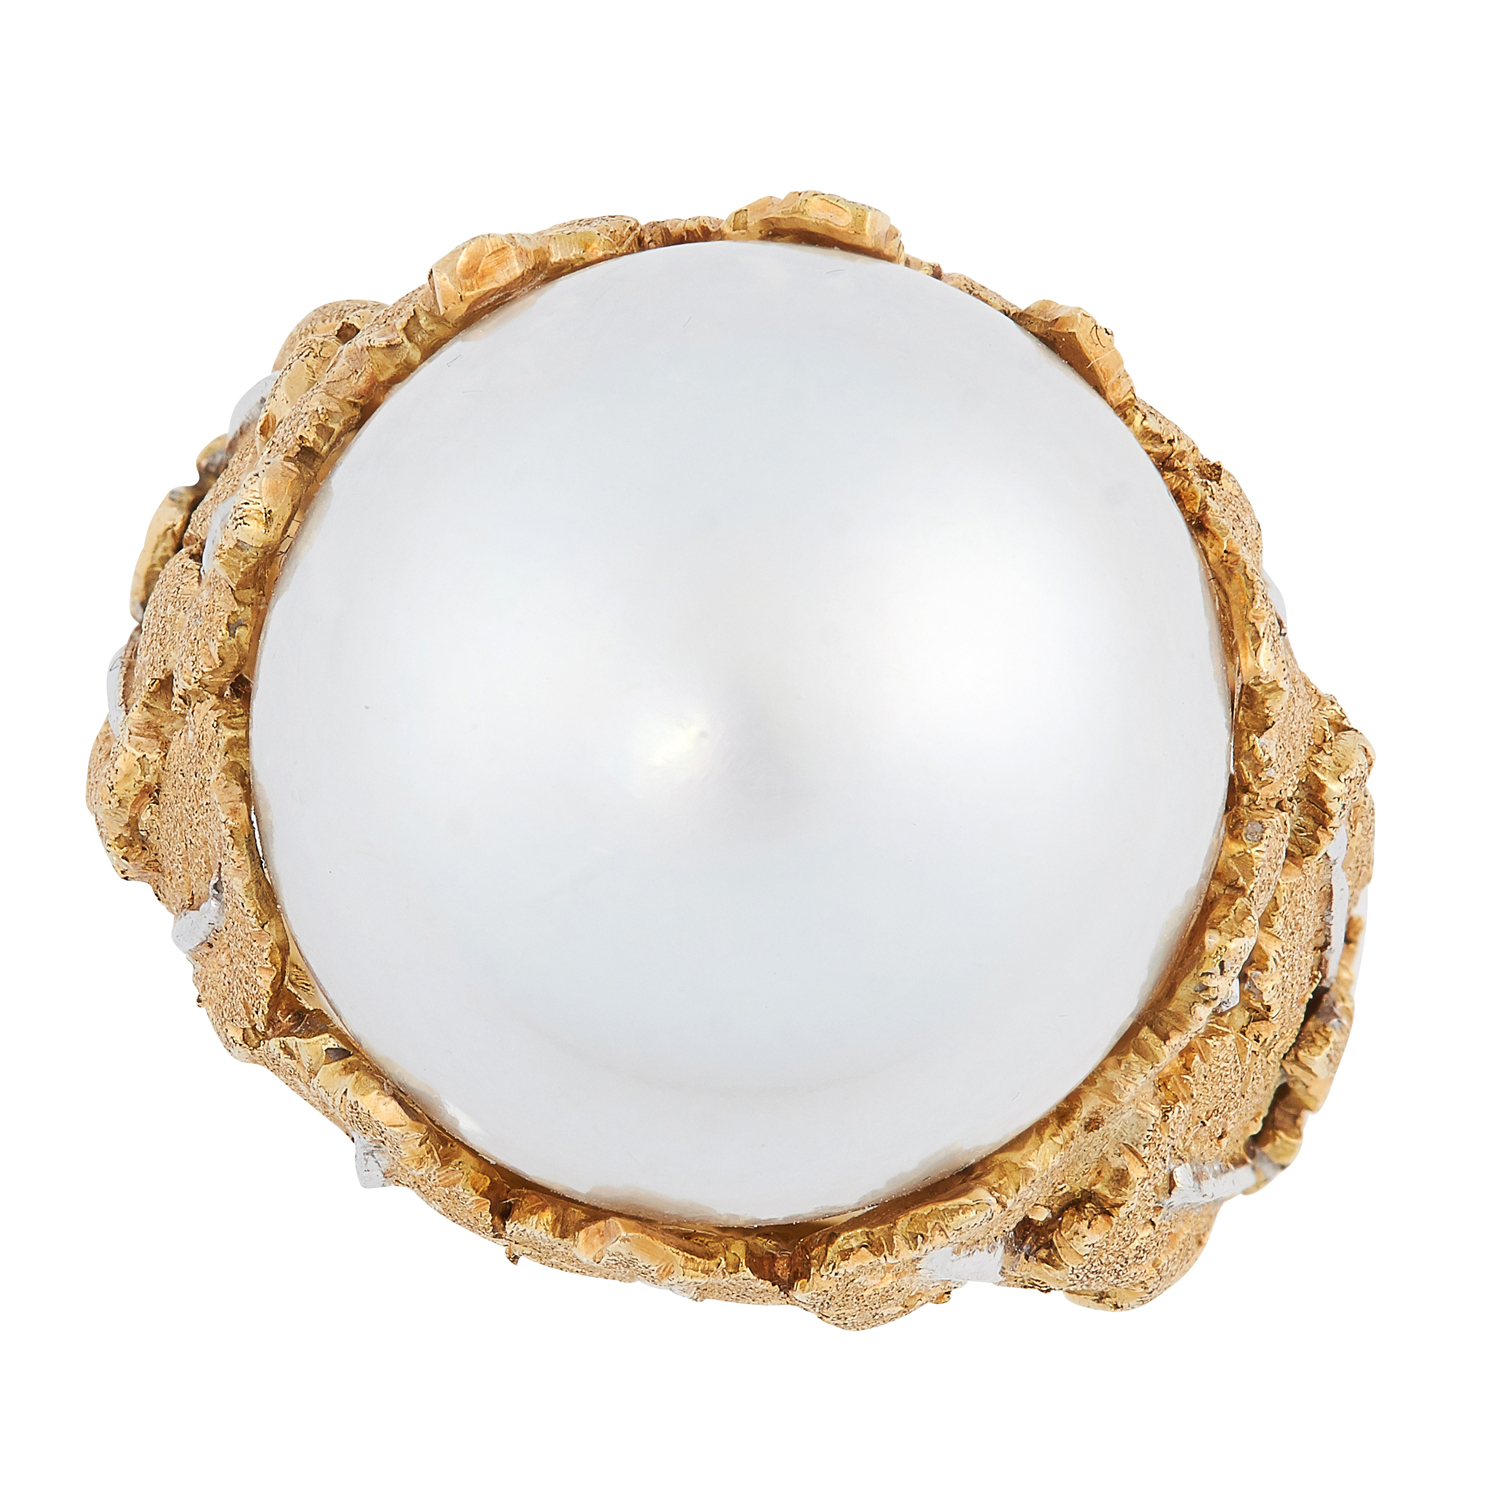 A PEARL DRESS RING, BUCCELLATI set with a central south sea pearl of 16.0mm, in an ornate setting